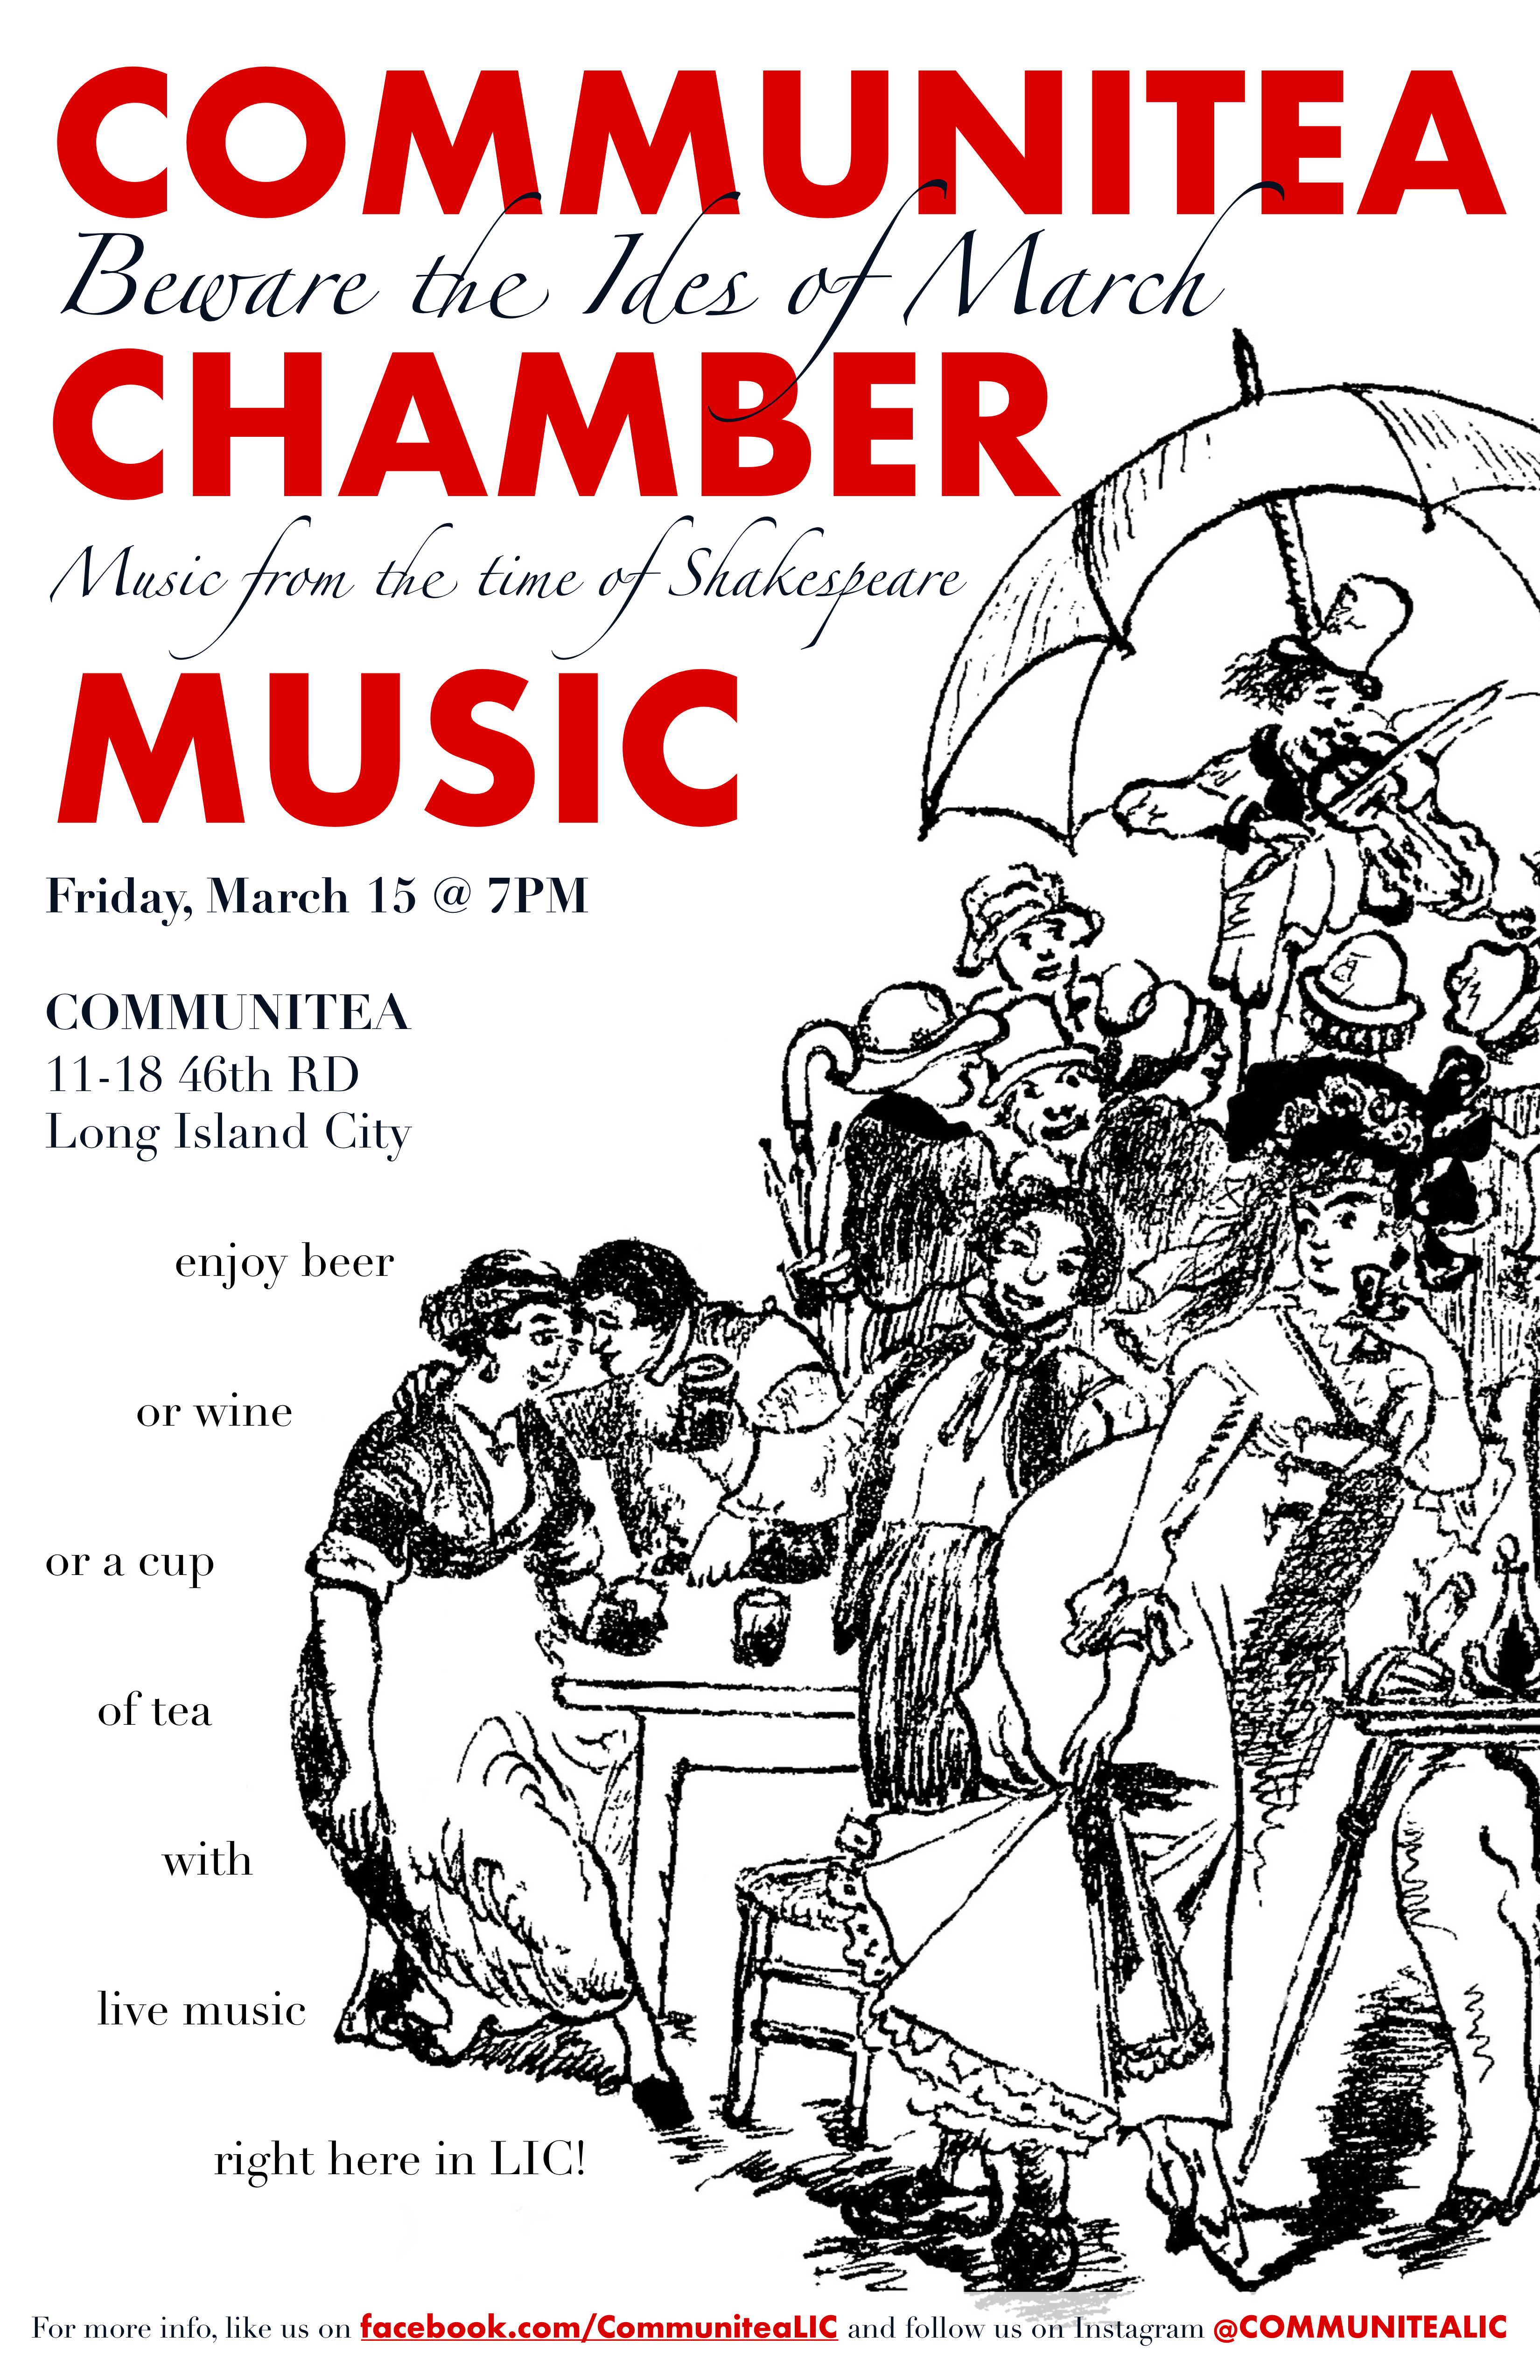 Communitea Chamber Music Poster - March